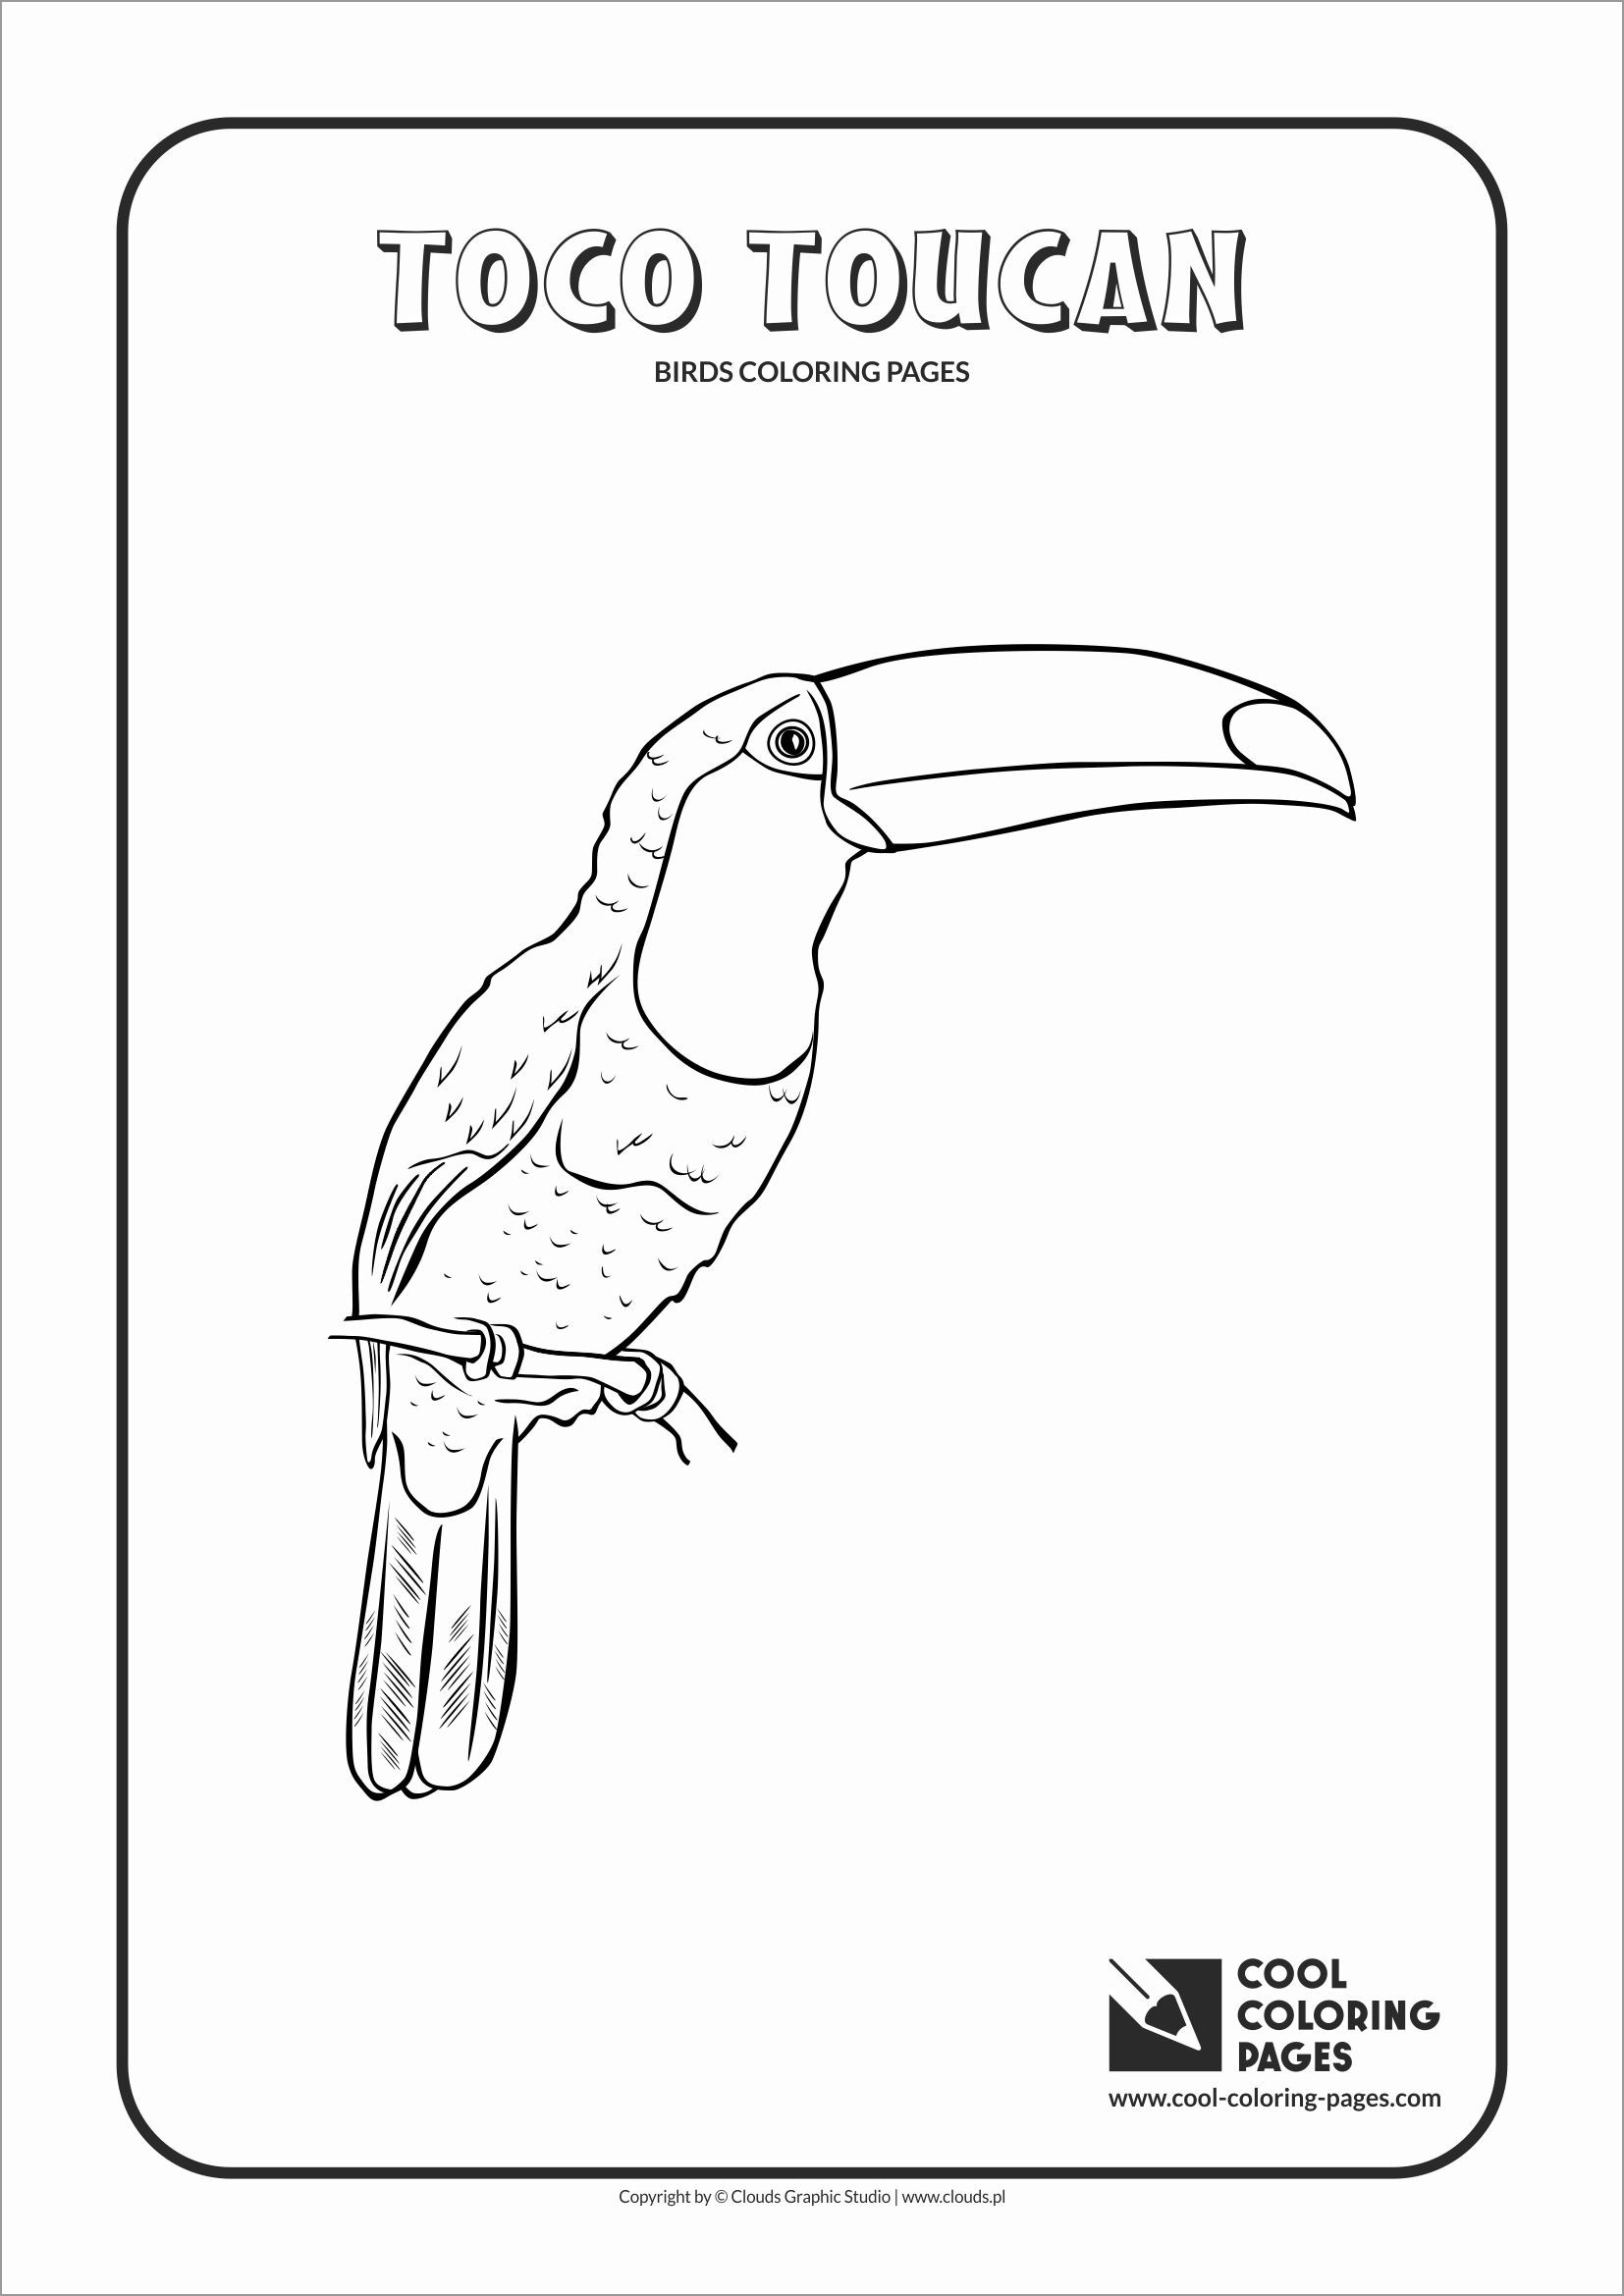 Toco toucan Coloring Pages